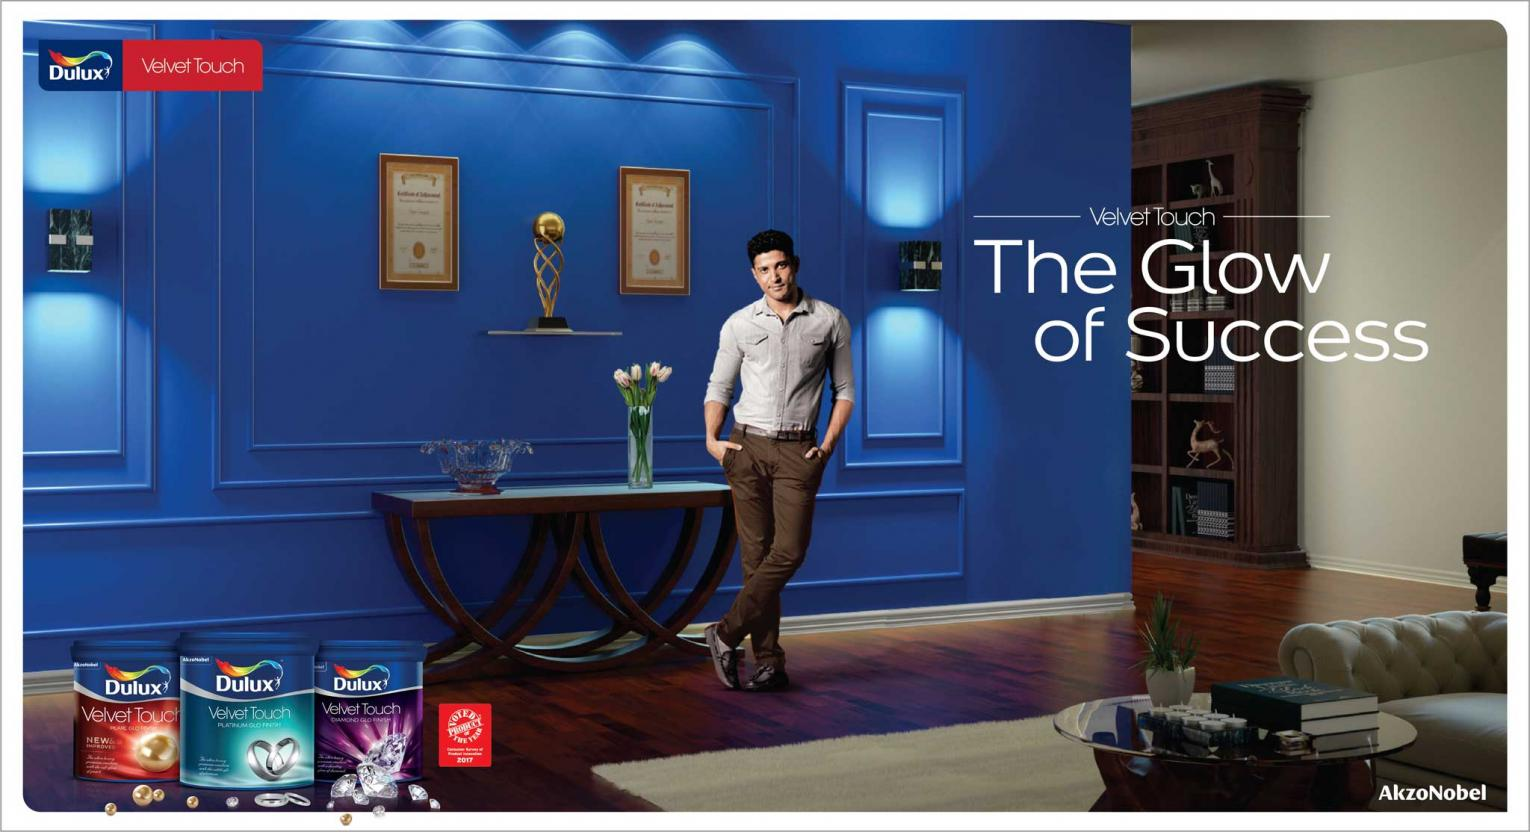 Dulux Velvet Touch – The Glow of Success